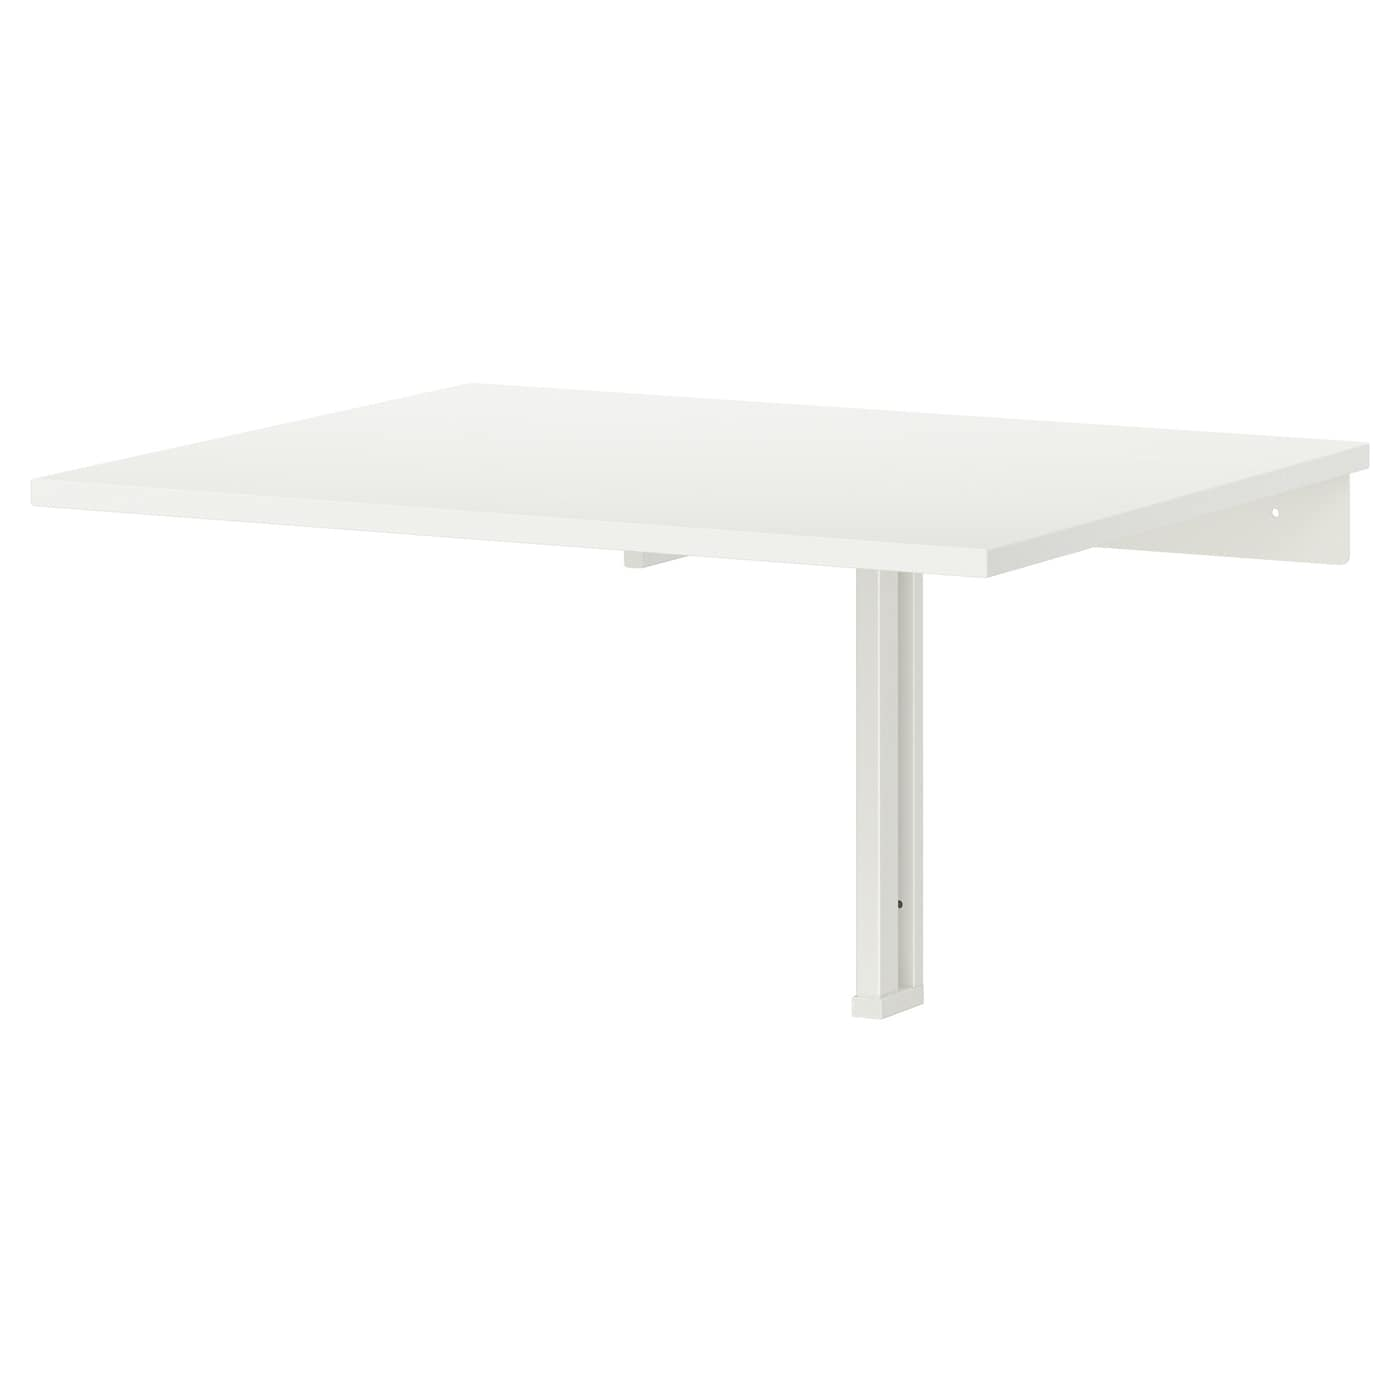 norberg wall mounted drop leaf table white 74 x 60 cm ikea. Black Bedroom Furniture Sets. Home Design Ideas